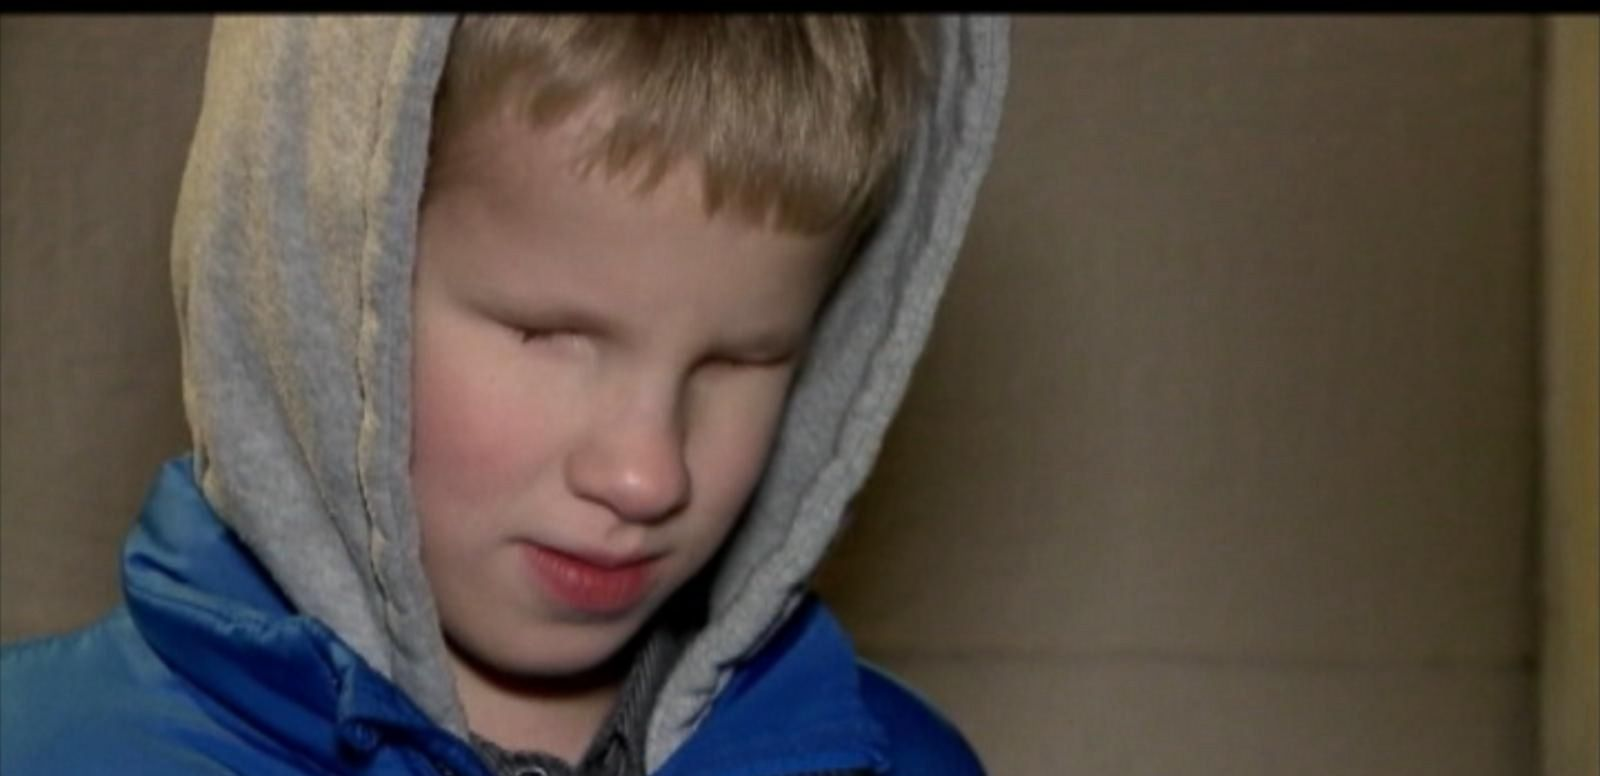 VIDEO: A North Kansas City school is apologizing today after an 8-year-old blind boy's cane was taken away and replaced by a pool noodle.